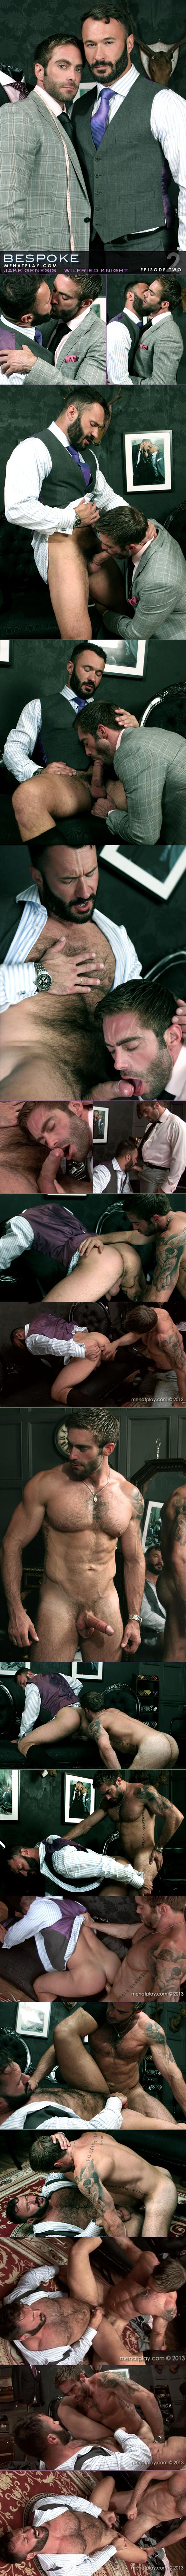 "MenAtPlay: Wilfried Knight gets fucked by Jake Genesis in ""Bespoke, Episode 2"""